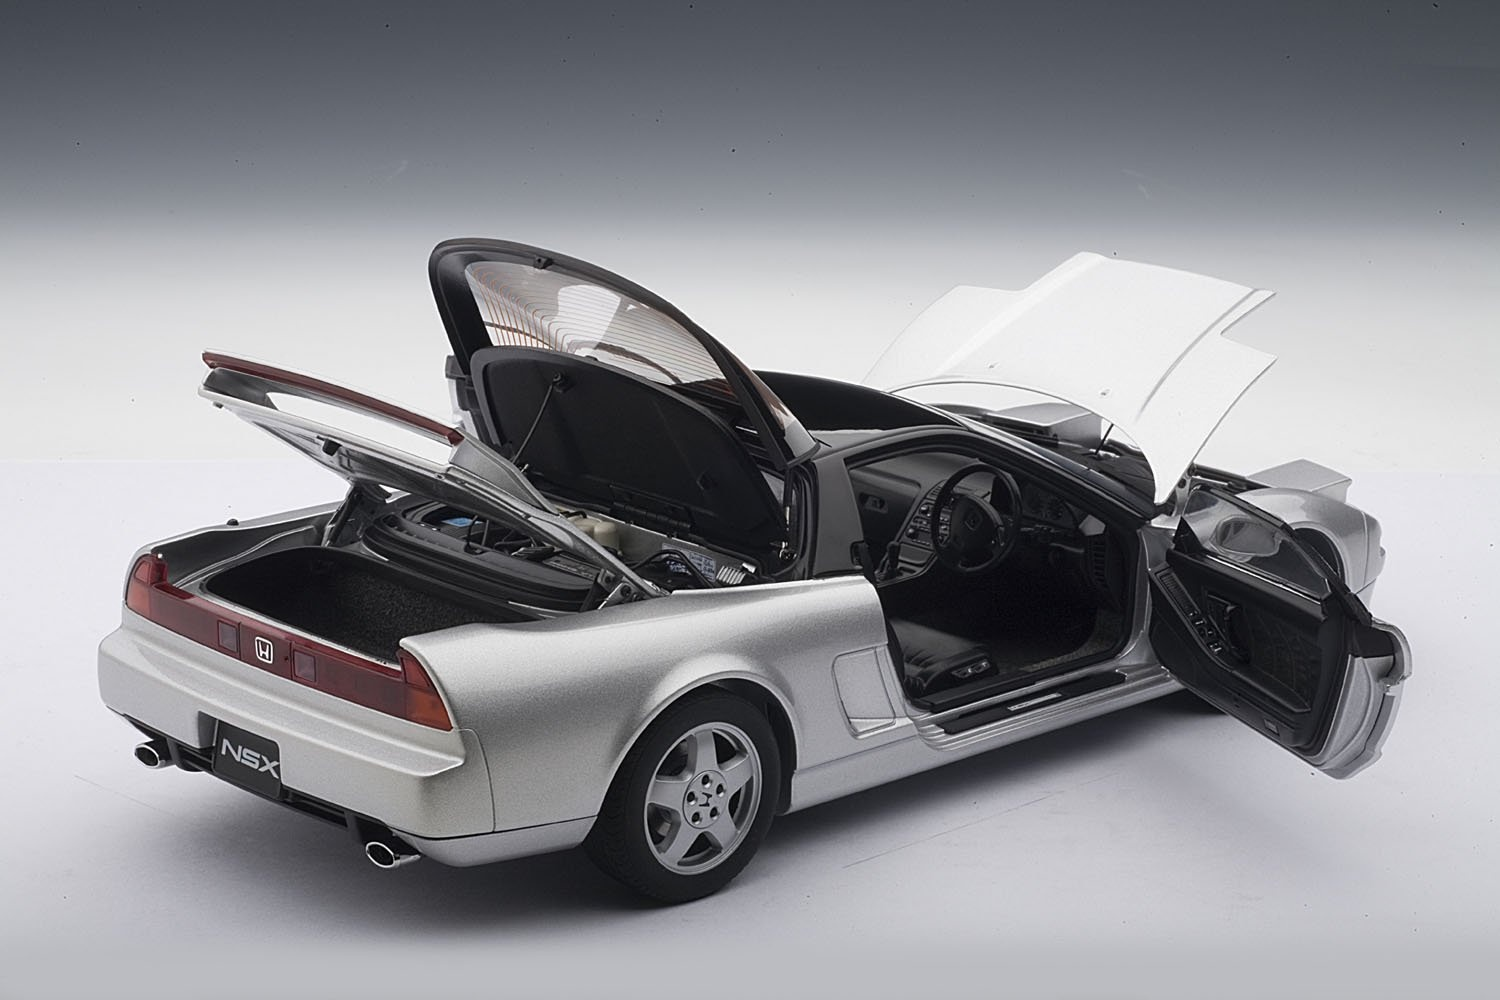 honda nsx 1990 silver 1 18 scale diecast model free shipping ebay. Black Bedroom Furniture Sets. Home Design Ideas